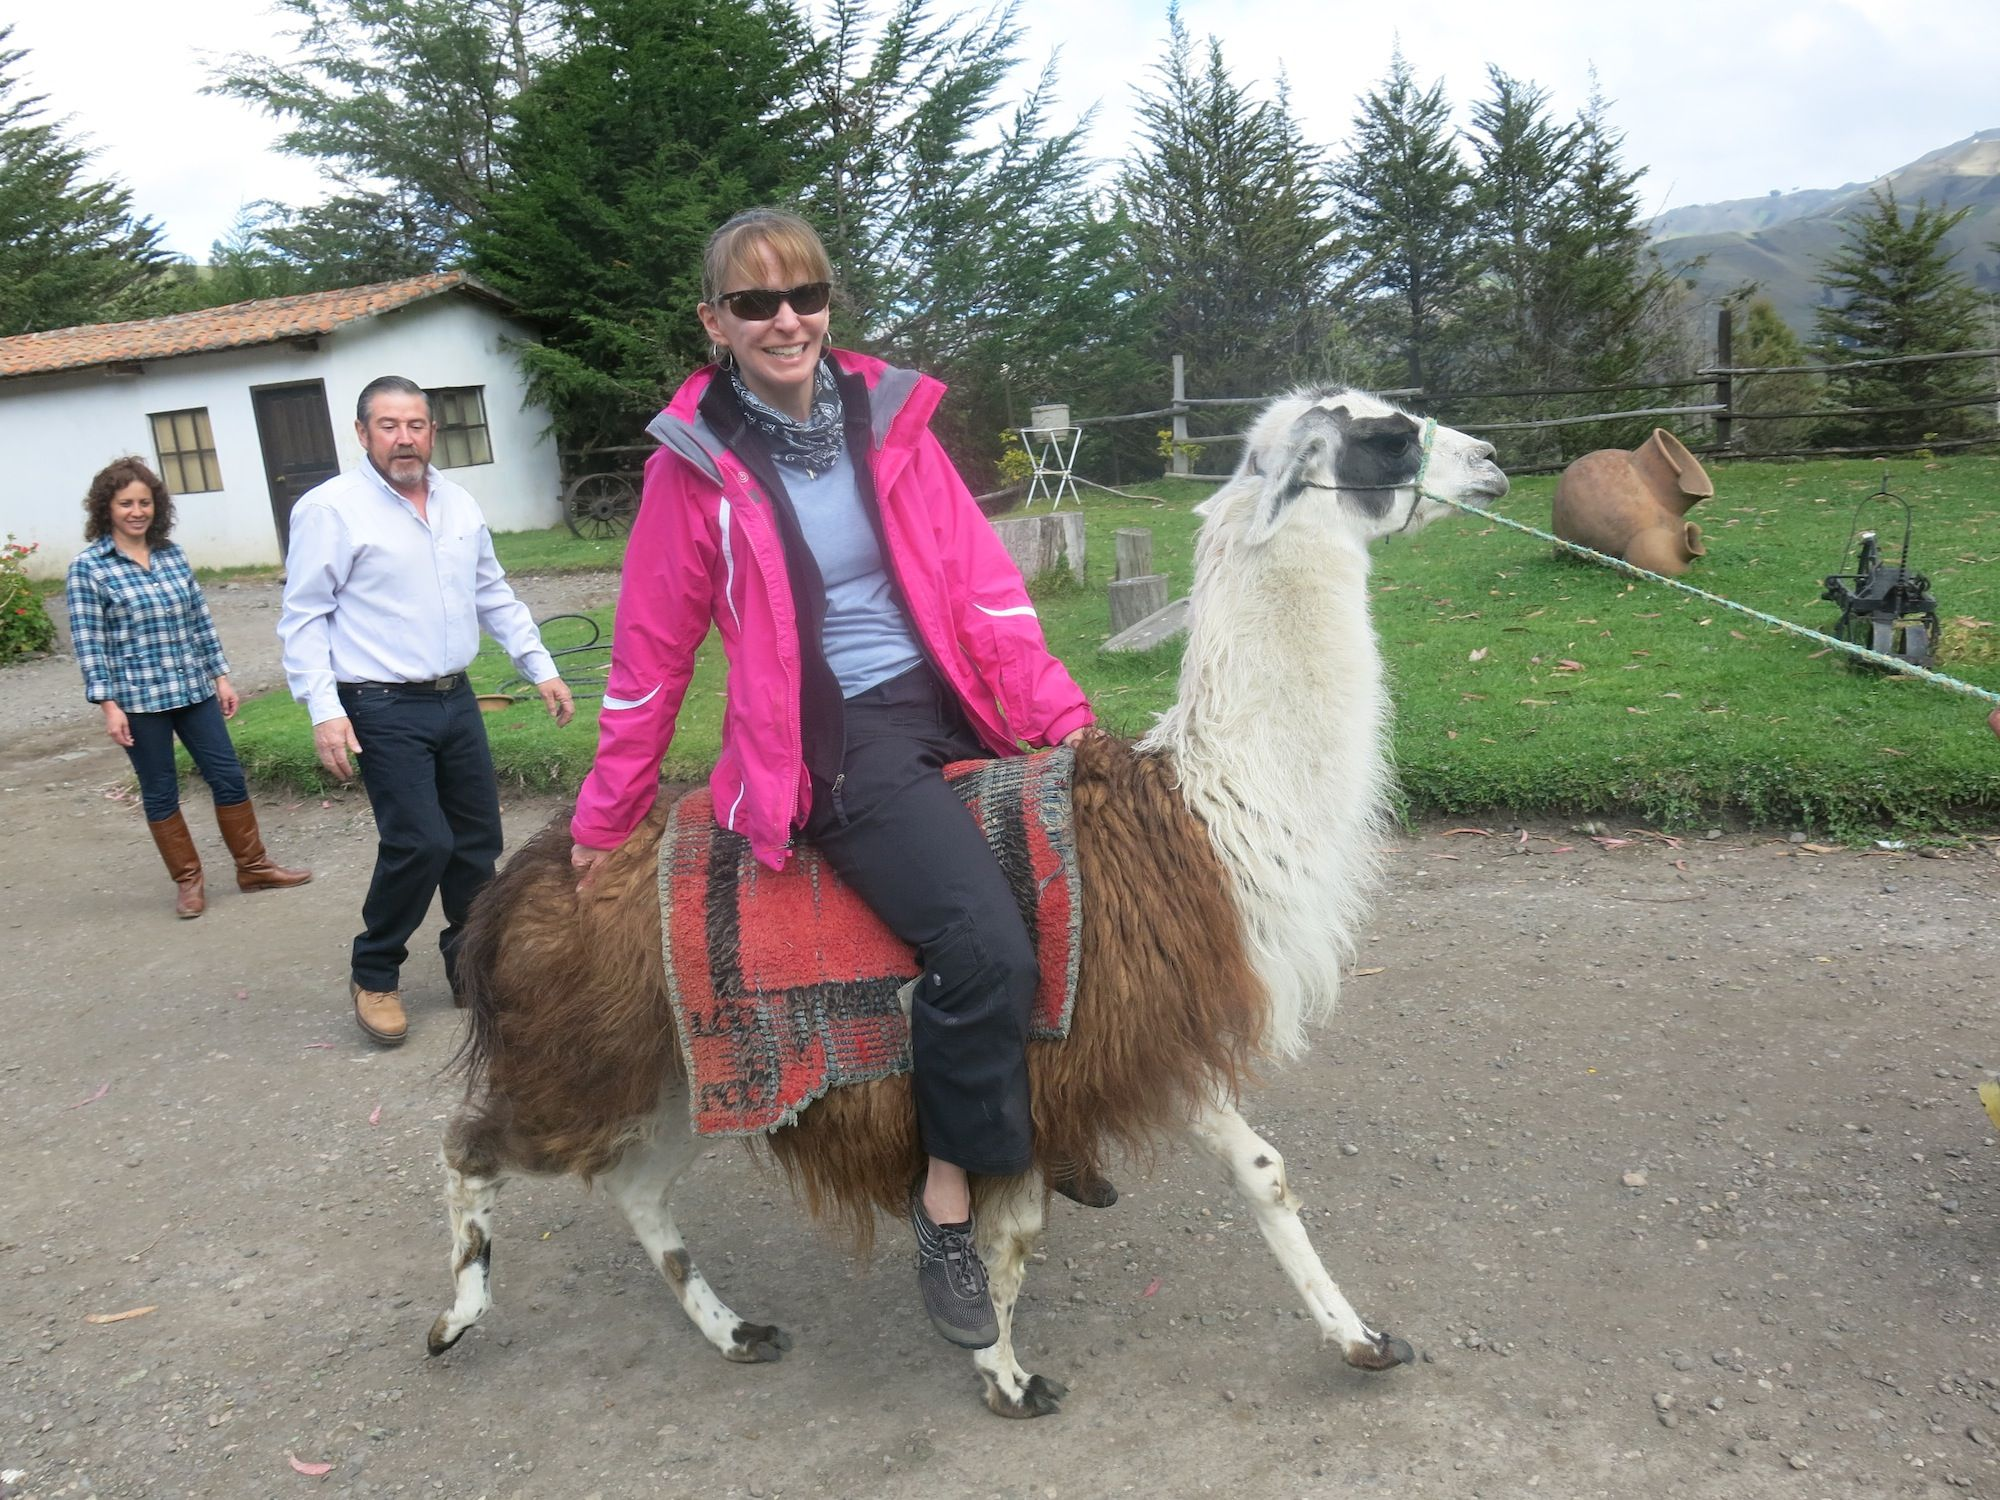 Can You Ride A Llama Trekking With Llamas Is Becoming More - If you hate humans you can now invite llamas to your wedding instead